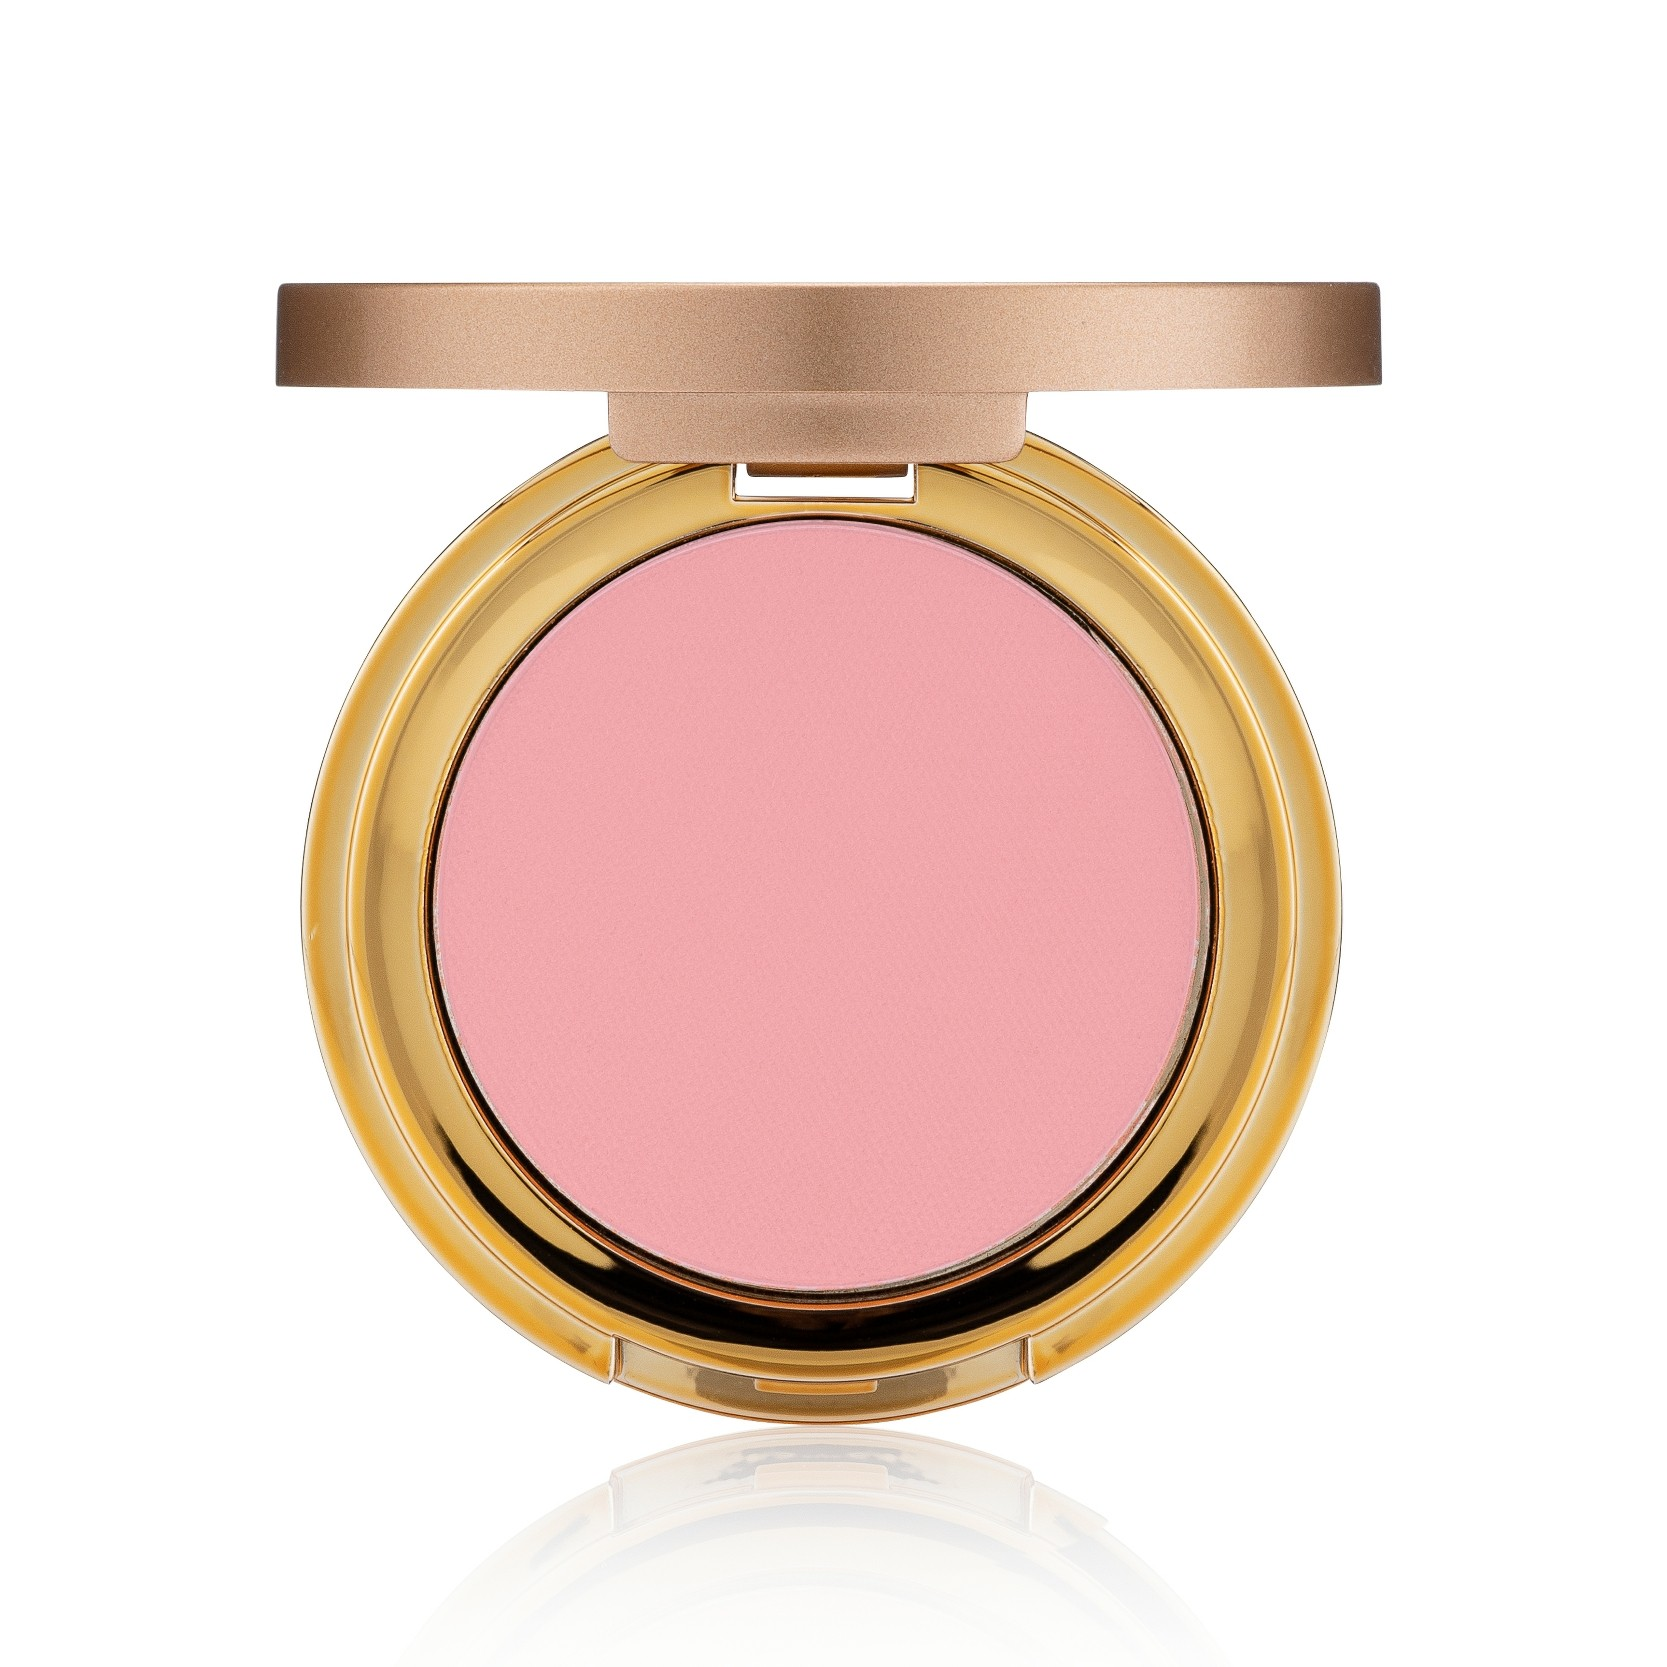 EWG VERIFIED™ Pink Parfait in new gold compact